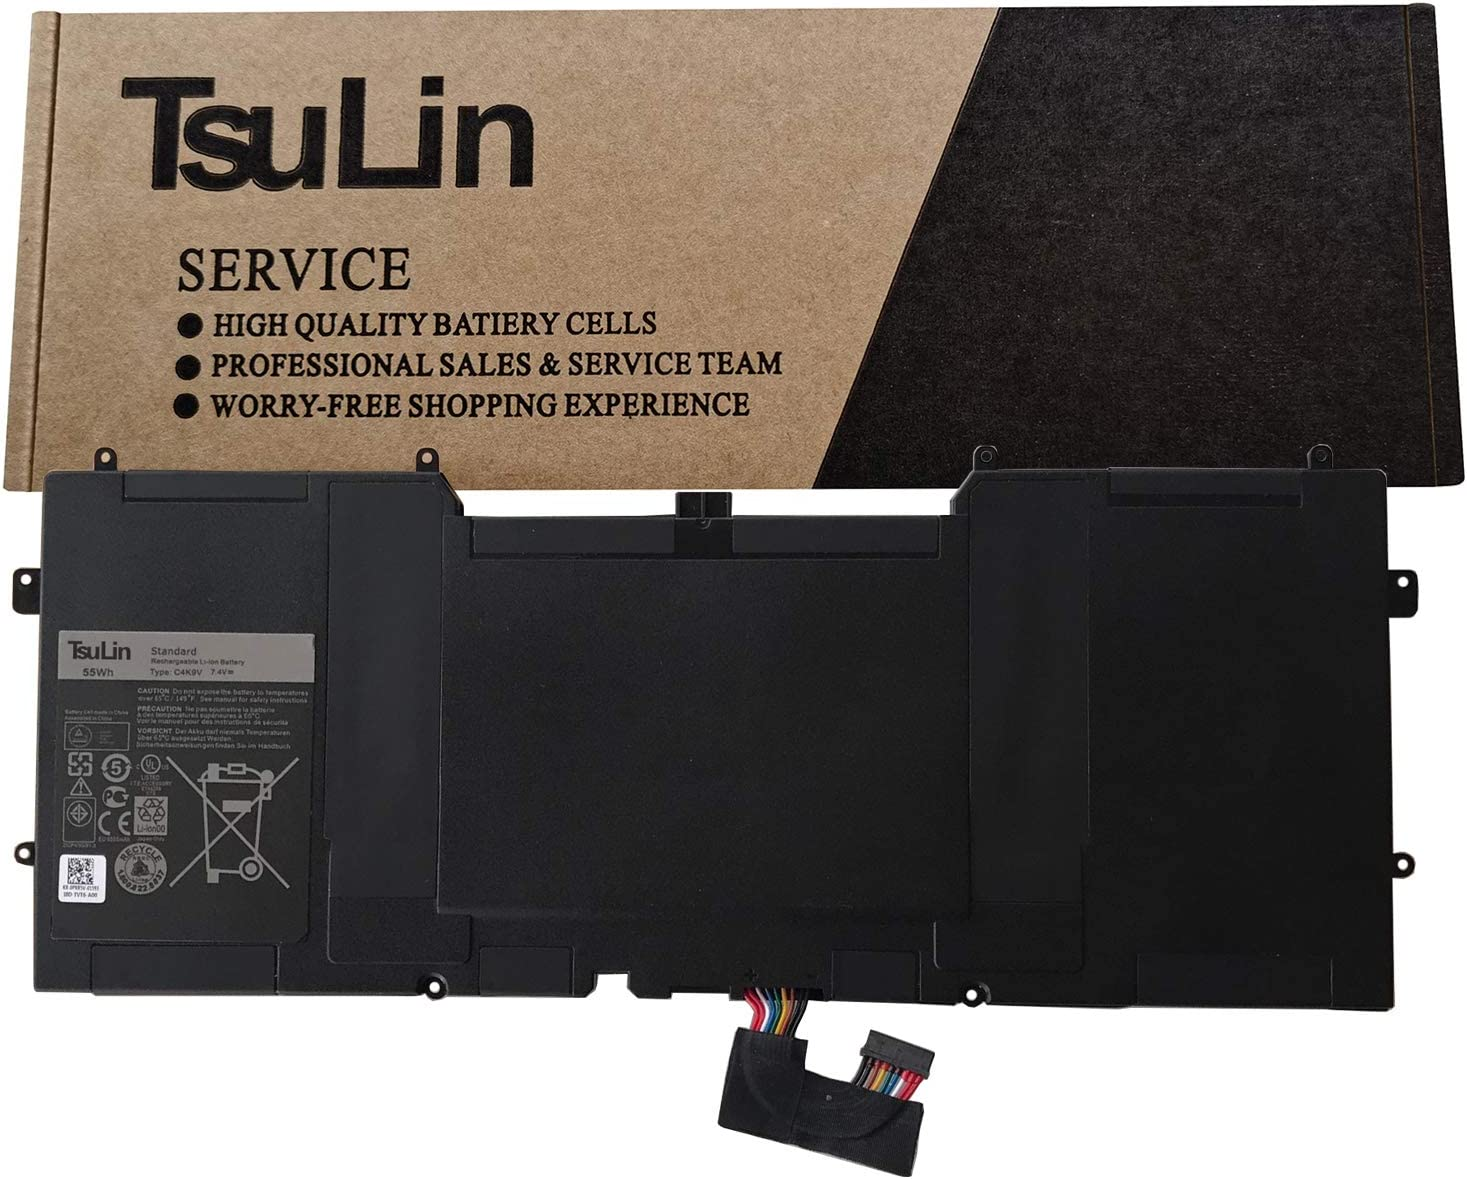 TsuLin C4K9V Laptop Battery Replacement for Dell XPS 12 9Q33 -L221X 13 9333 Ultrabook 13 XPS13 13-L321X 13-L322X XPS L321X L322X Series Notebook 3H76R 489XN PKH18 7.4V 55Wh